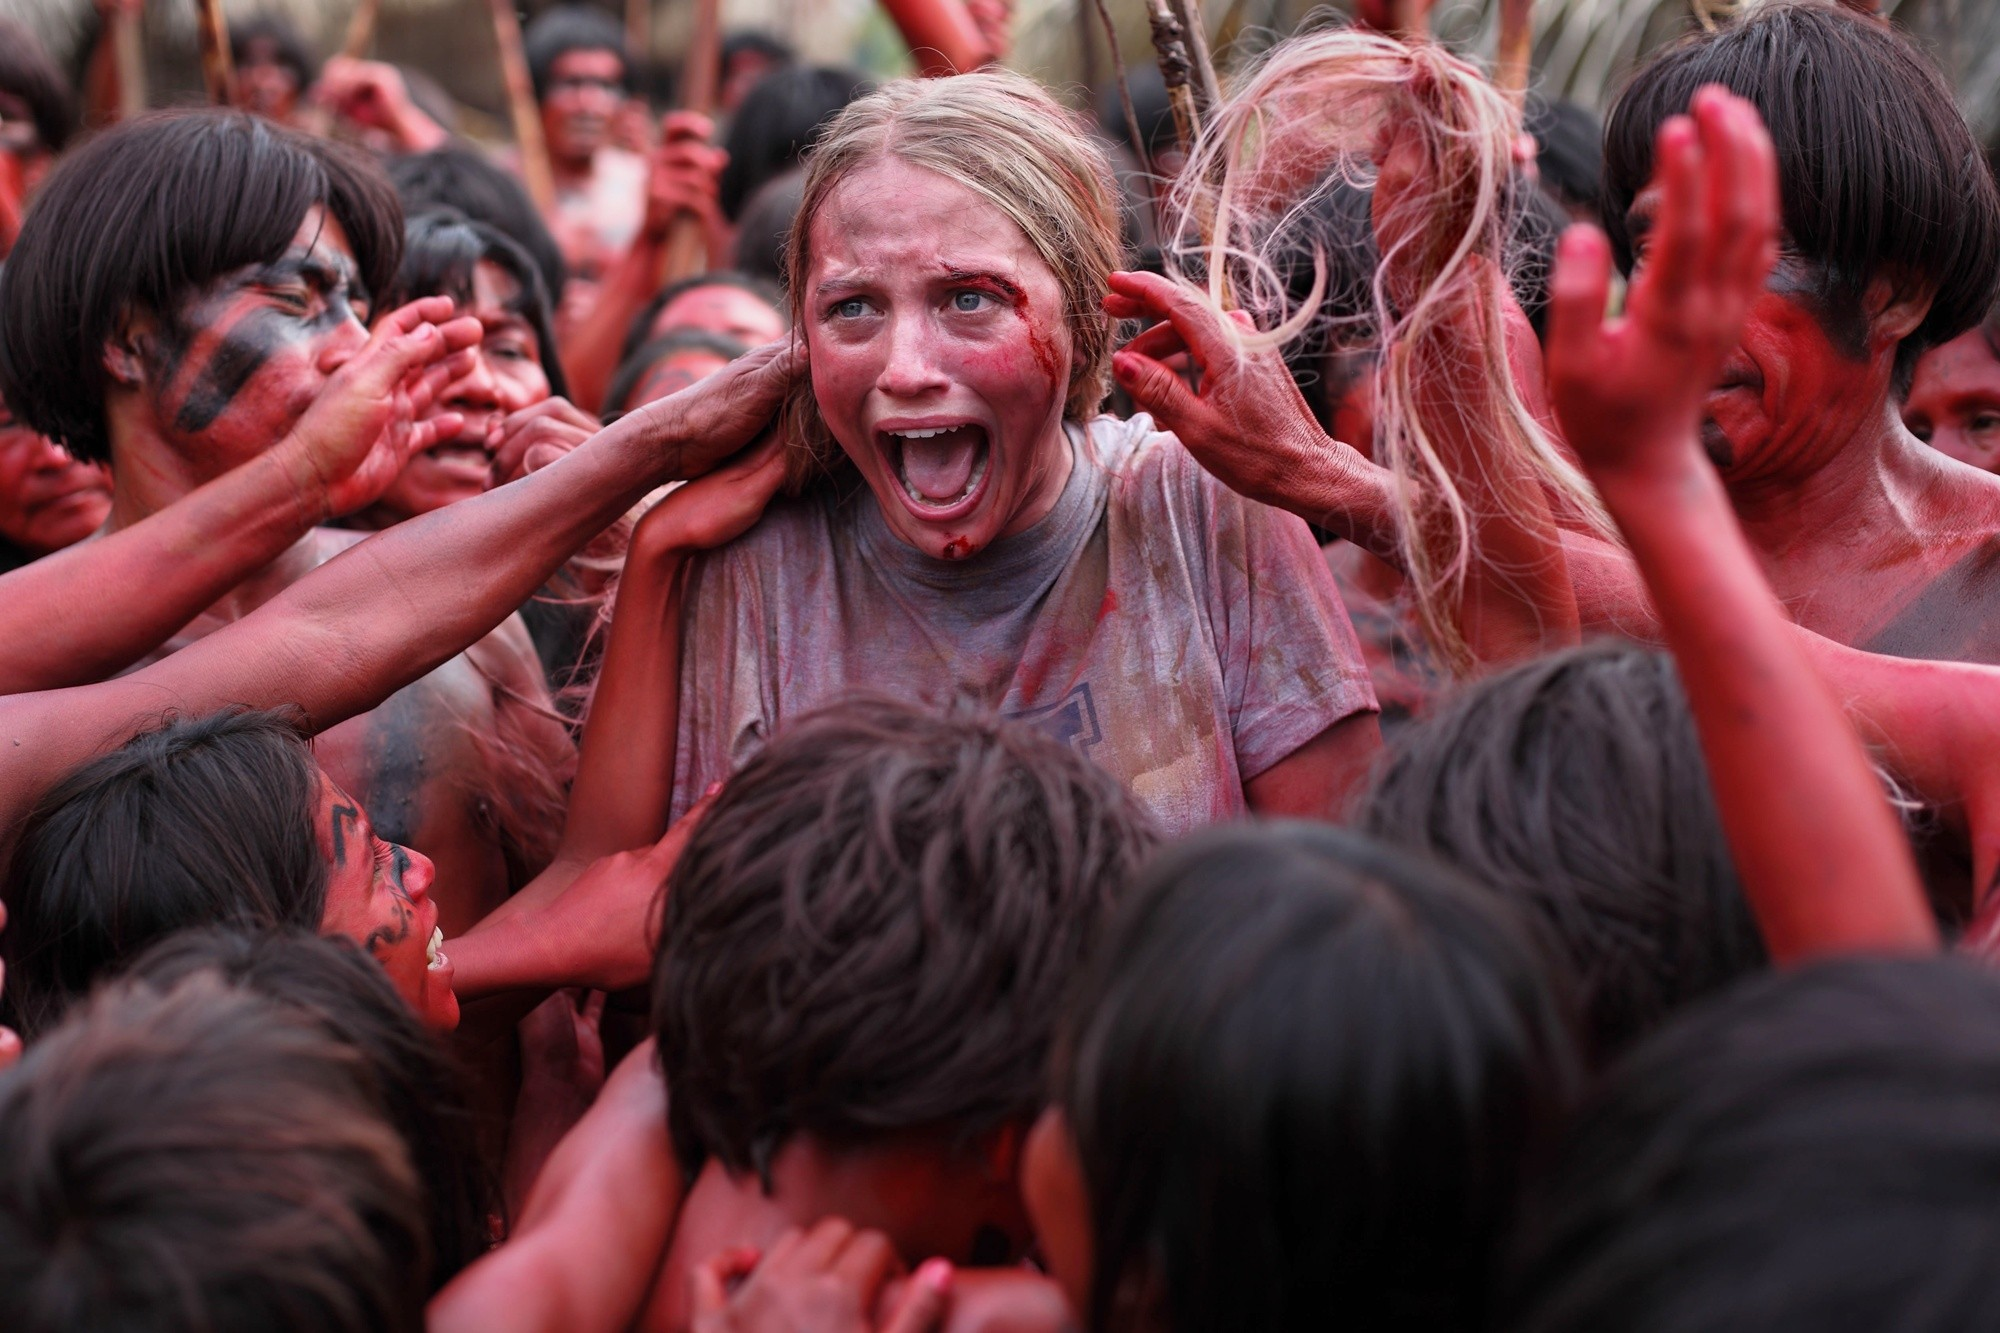 The-Green-Inferno-image-1